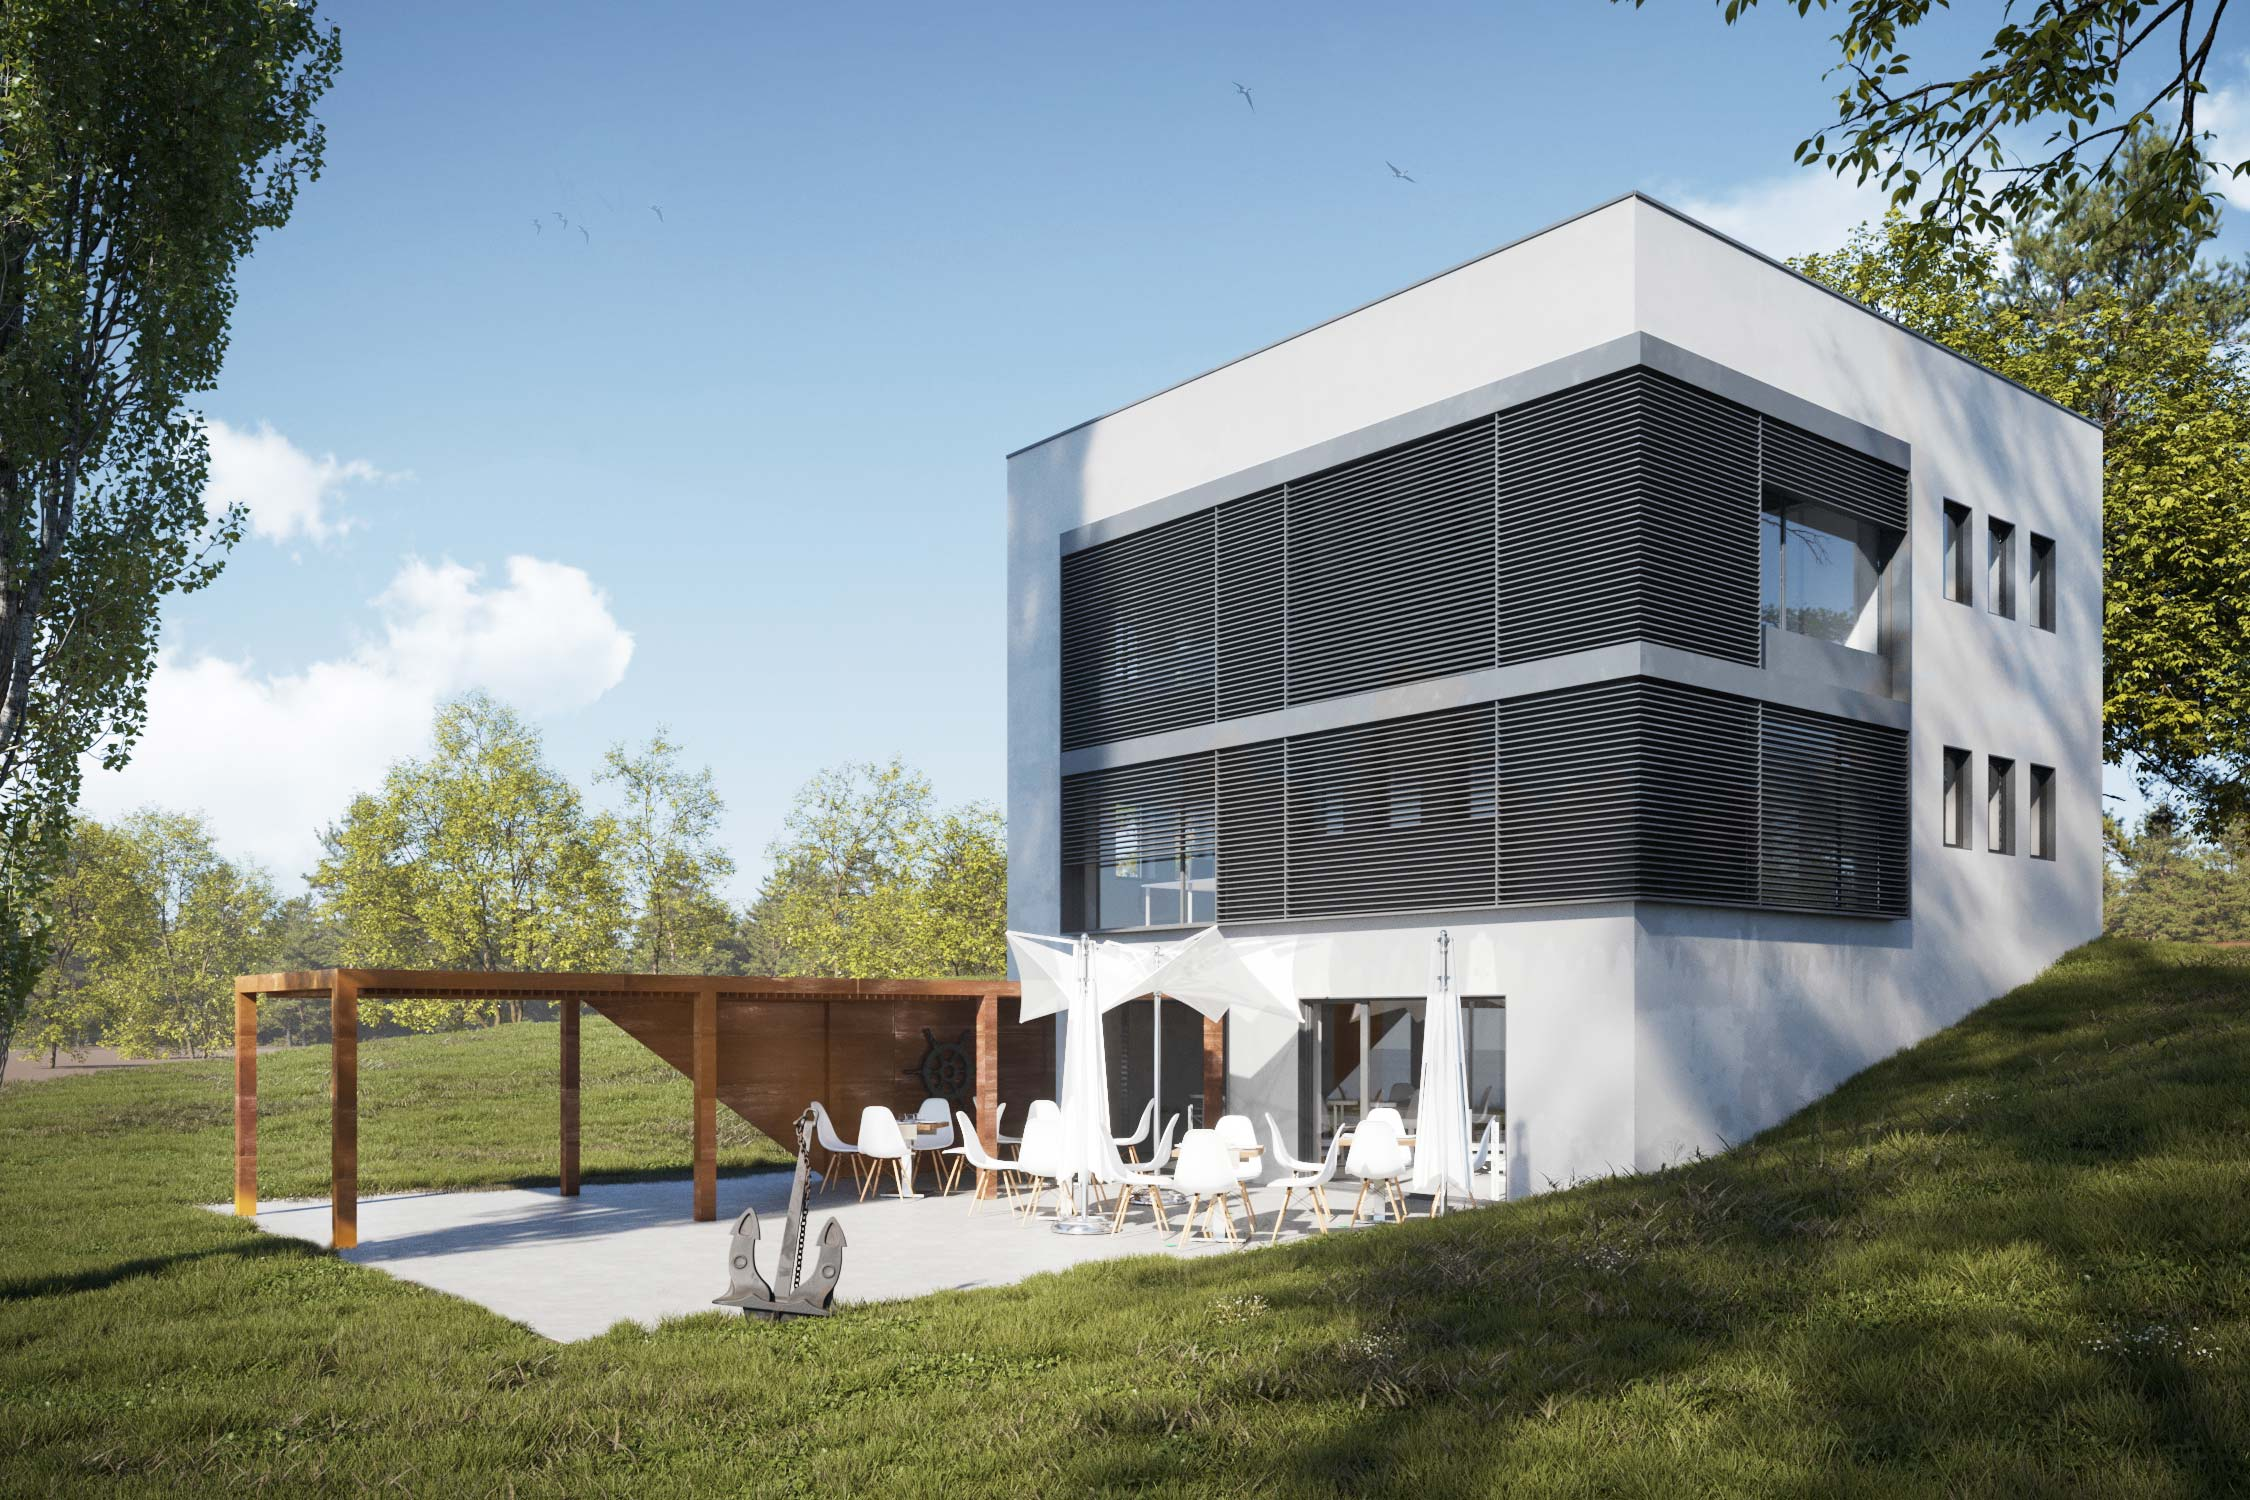 Redevelopment of an office building on an island in Wrocław - 2 versions